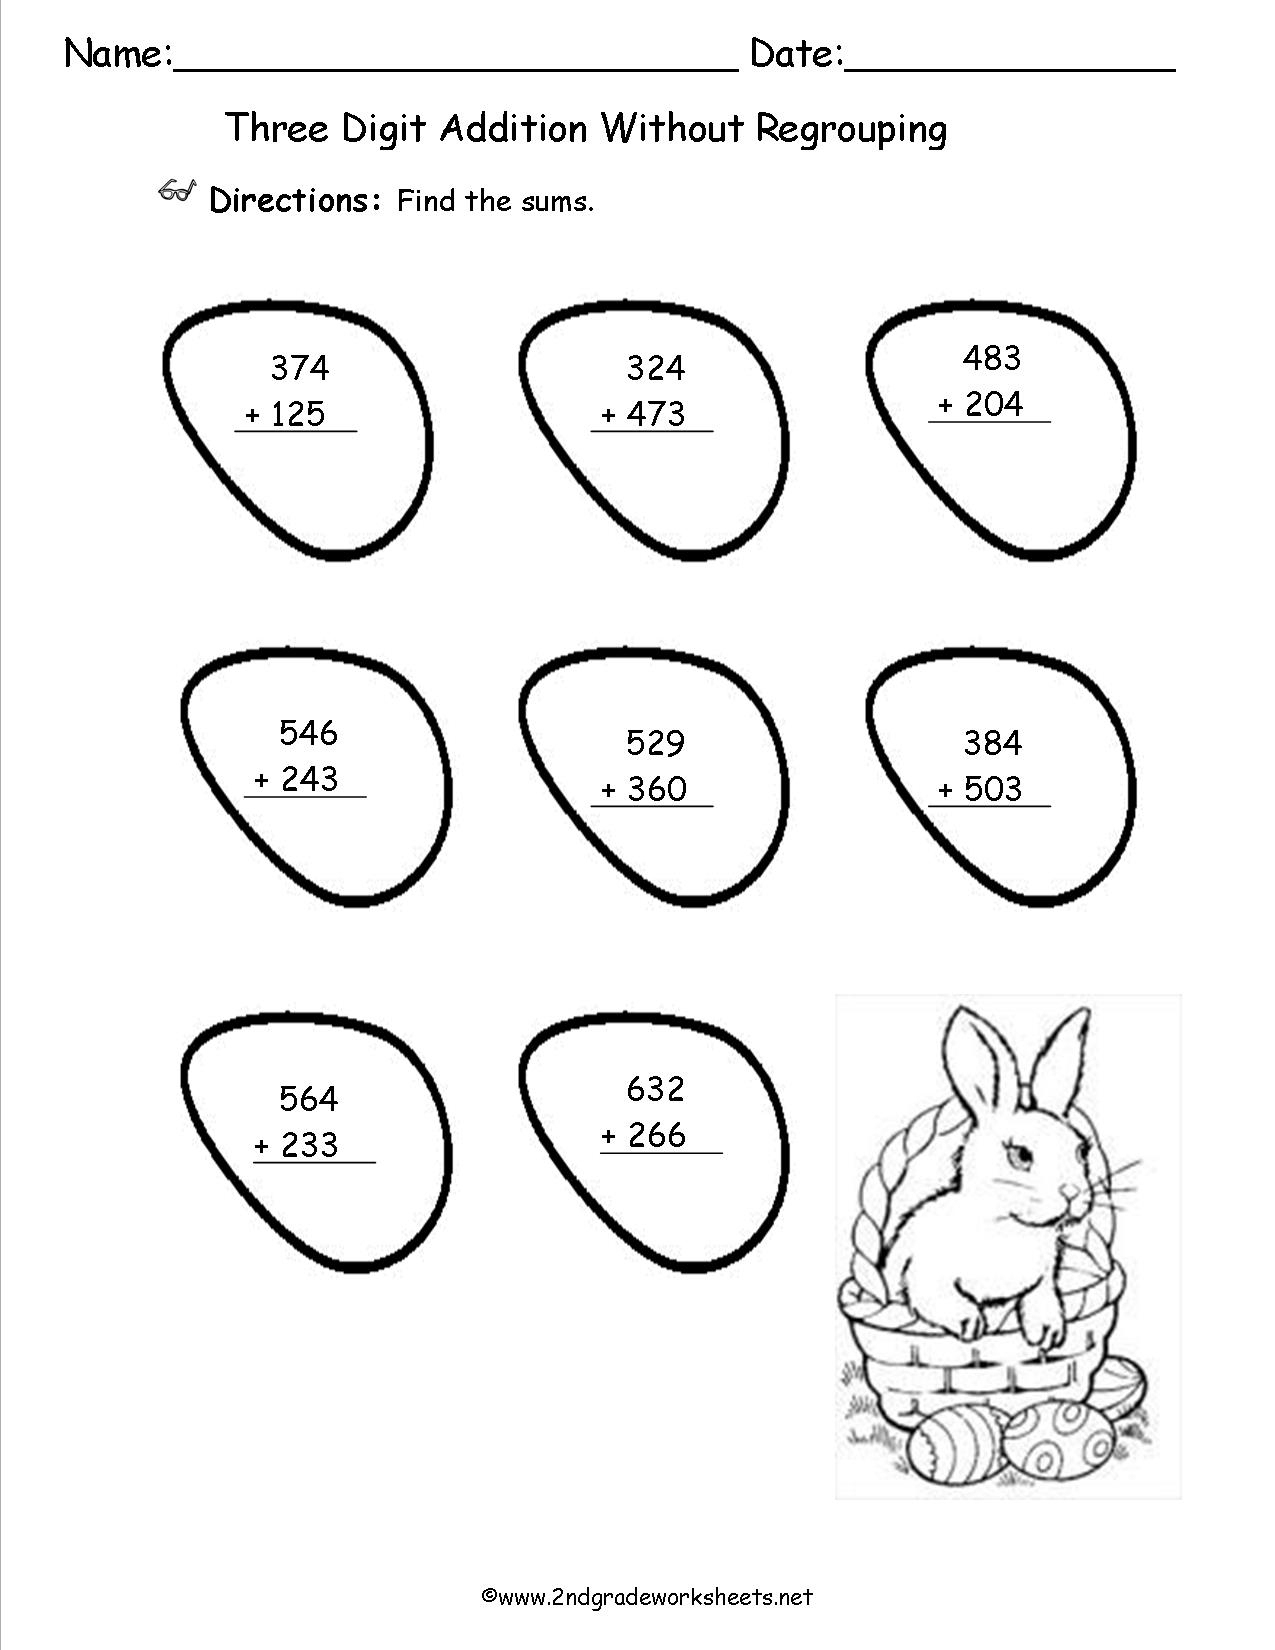 Easter Worksheets And Printouts - Free Printable Easter Worksheets | Free Printable Easter Worksheets For 3Rd Grade